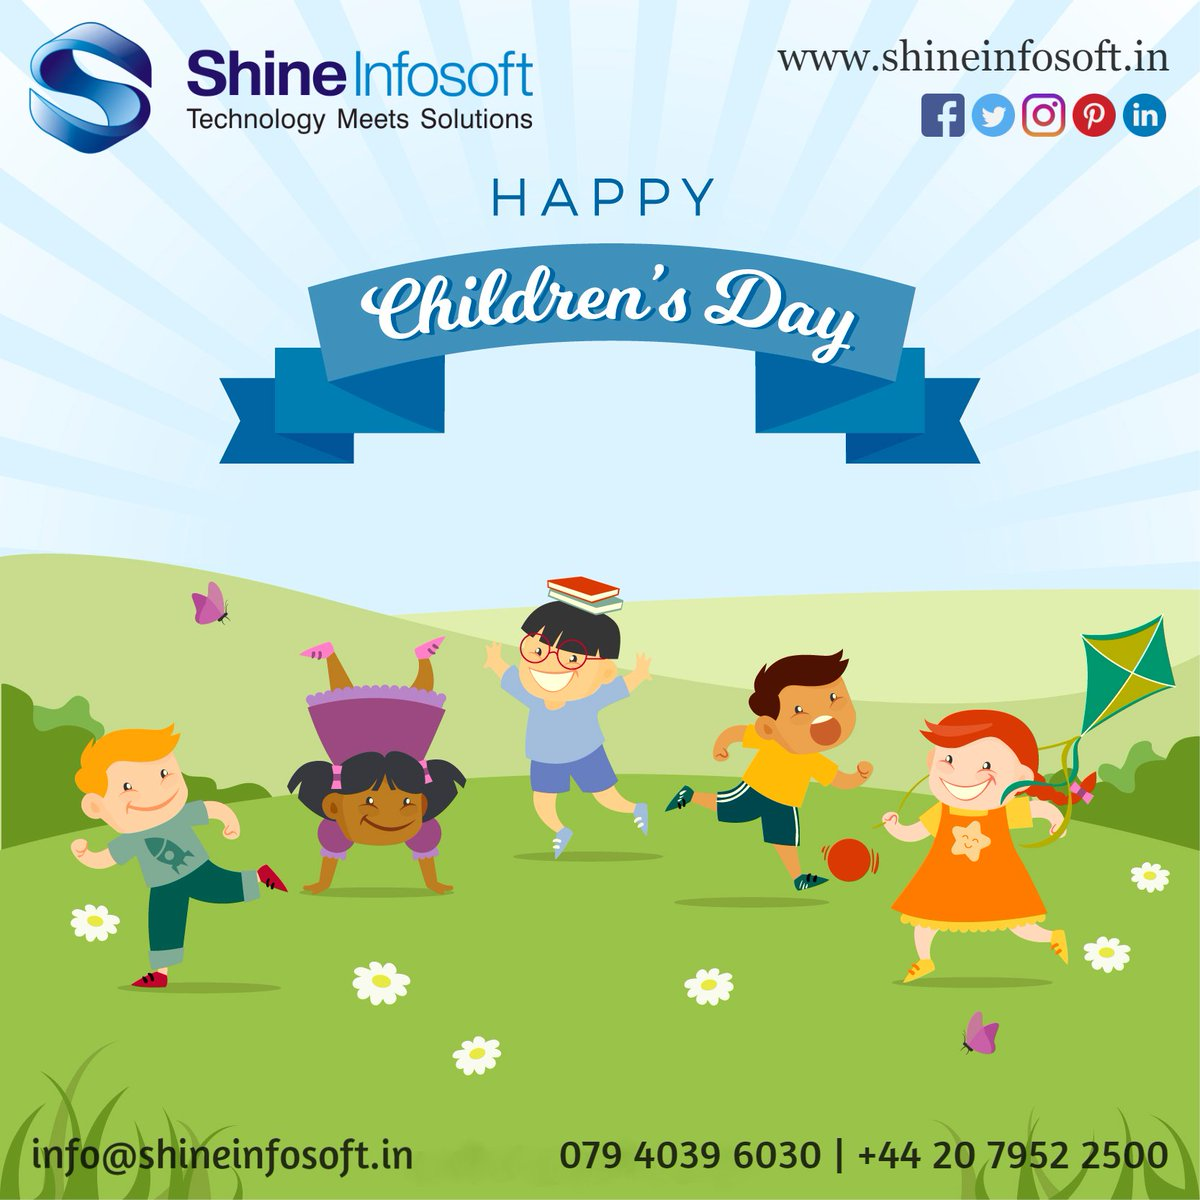 There are only two lasting gift we should give our children, One is roots and second is wings. HappyChildren'sDay.  #Shineinfosoft #HappyChildrenDay #Mobileappdevelopment #Xamarinappdevelopment #webdevelopment #TechnologyUpdates<br>http://pic.twitter.com/Bt7m17Eif0